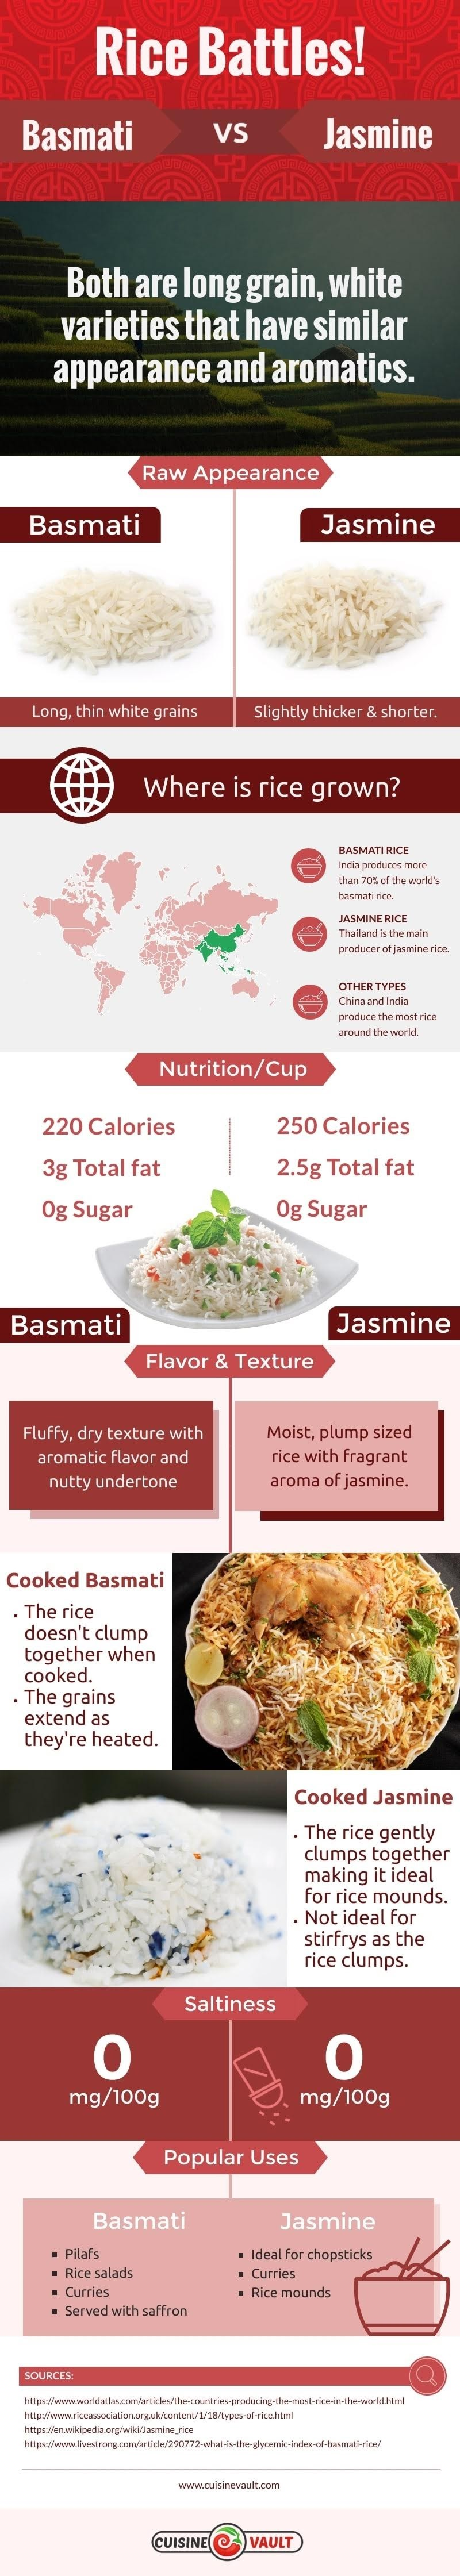 Battles rise! Rice Basmati vs Jasmine Rice #infographic